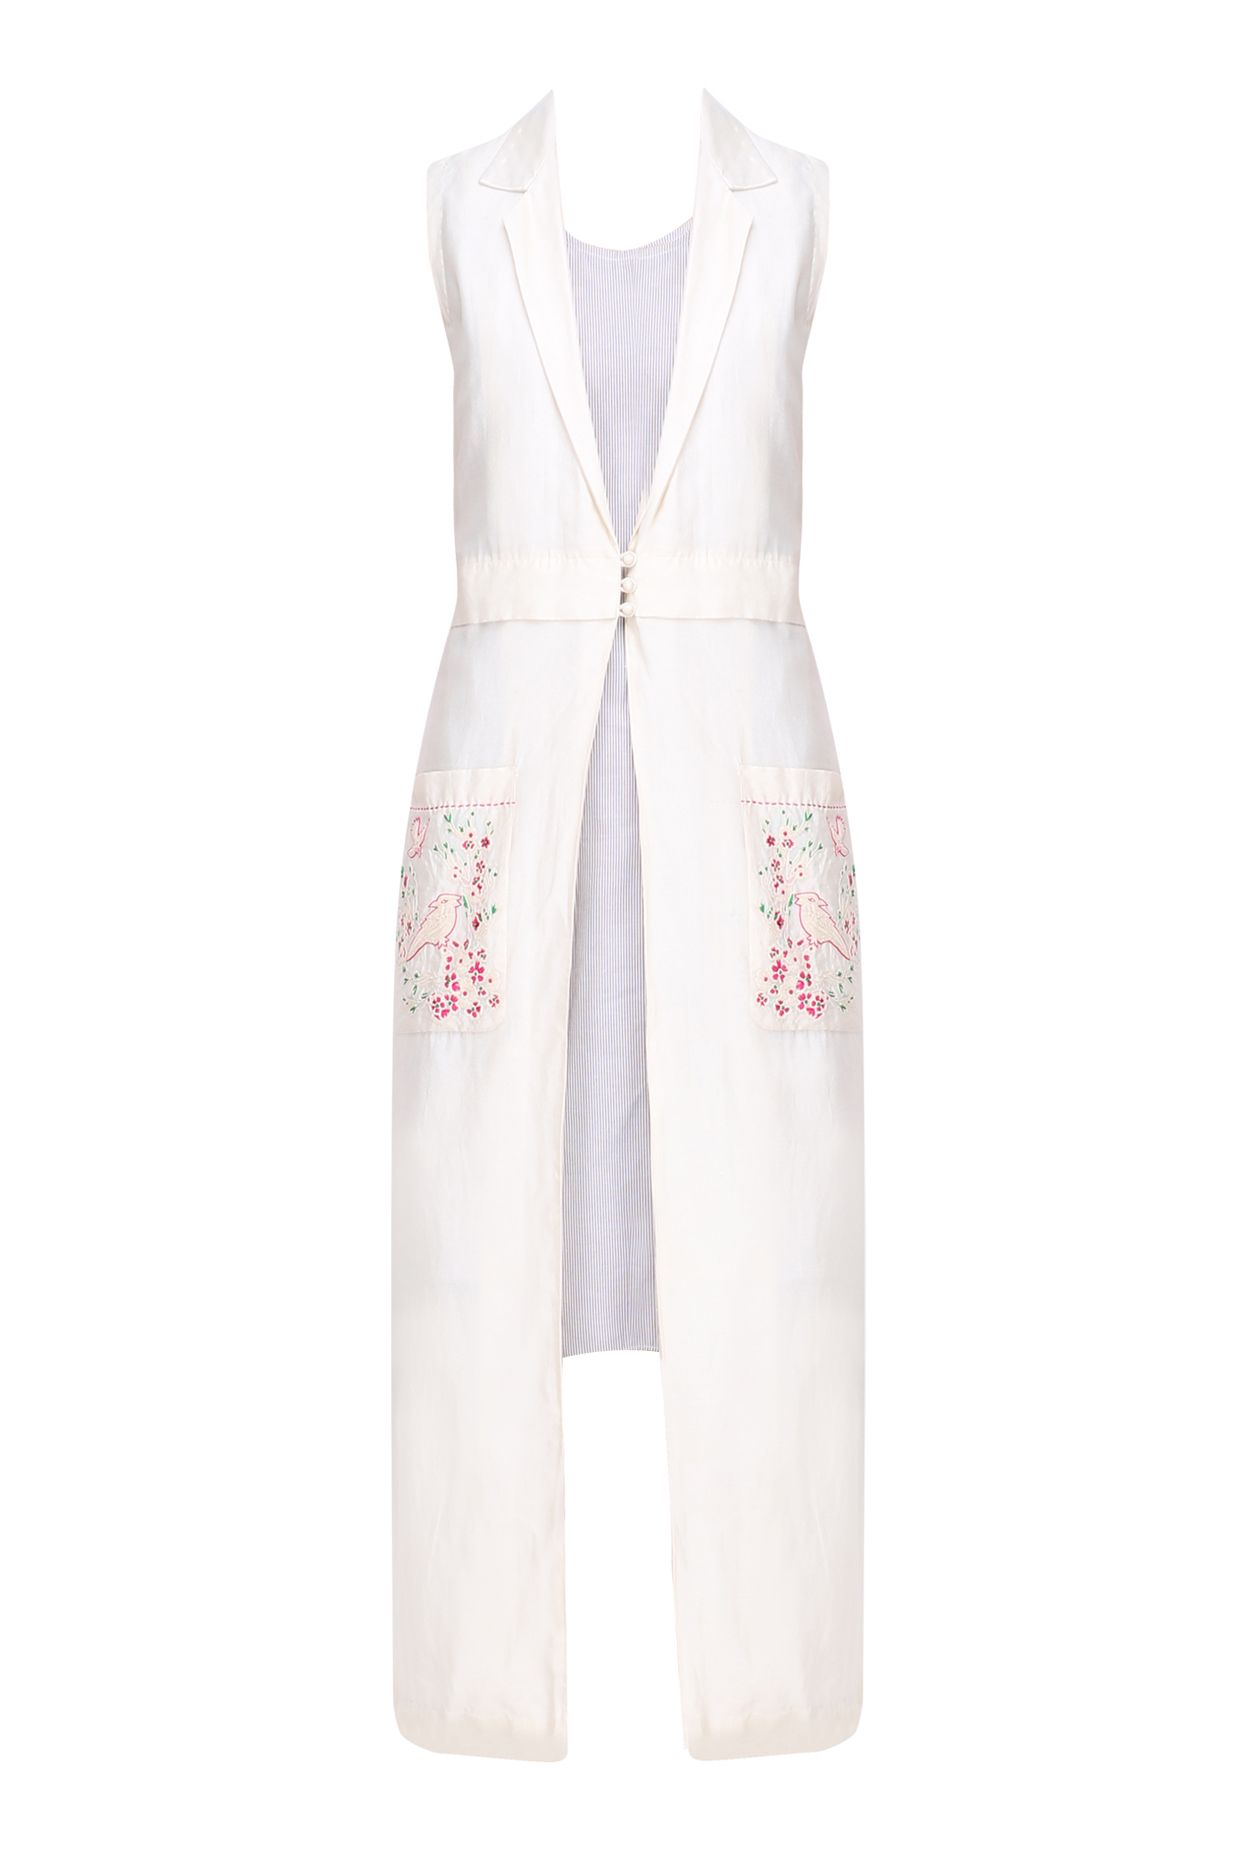 Ivory birds embroidered long jacket with slip dress available only at Pernia's Pop Up Shop.